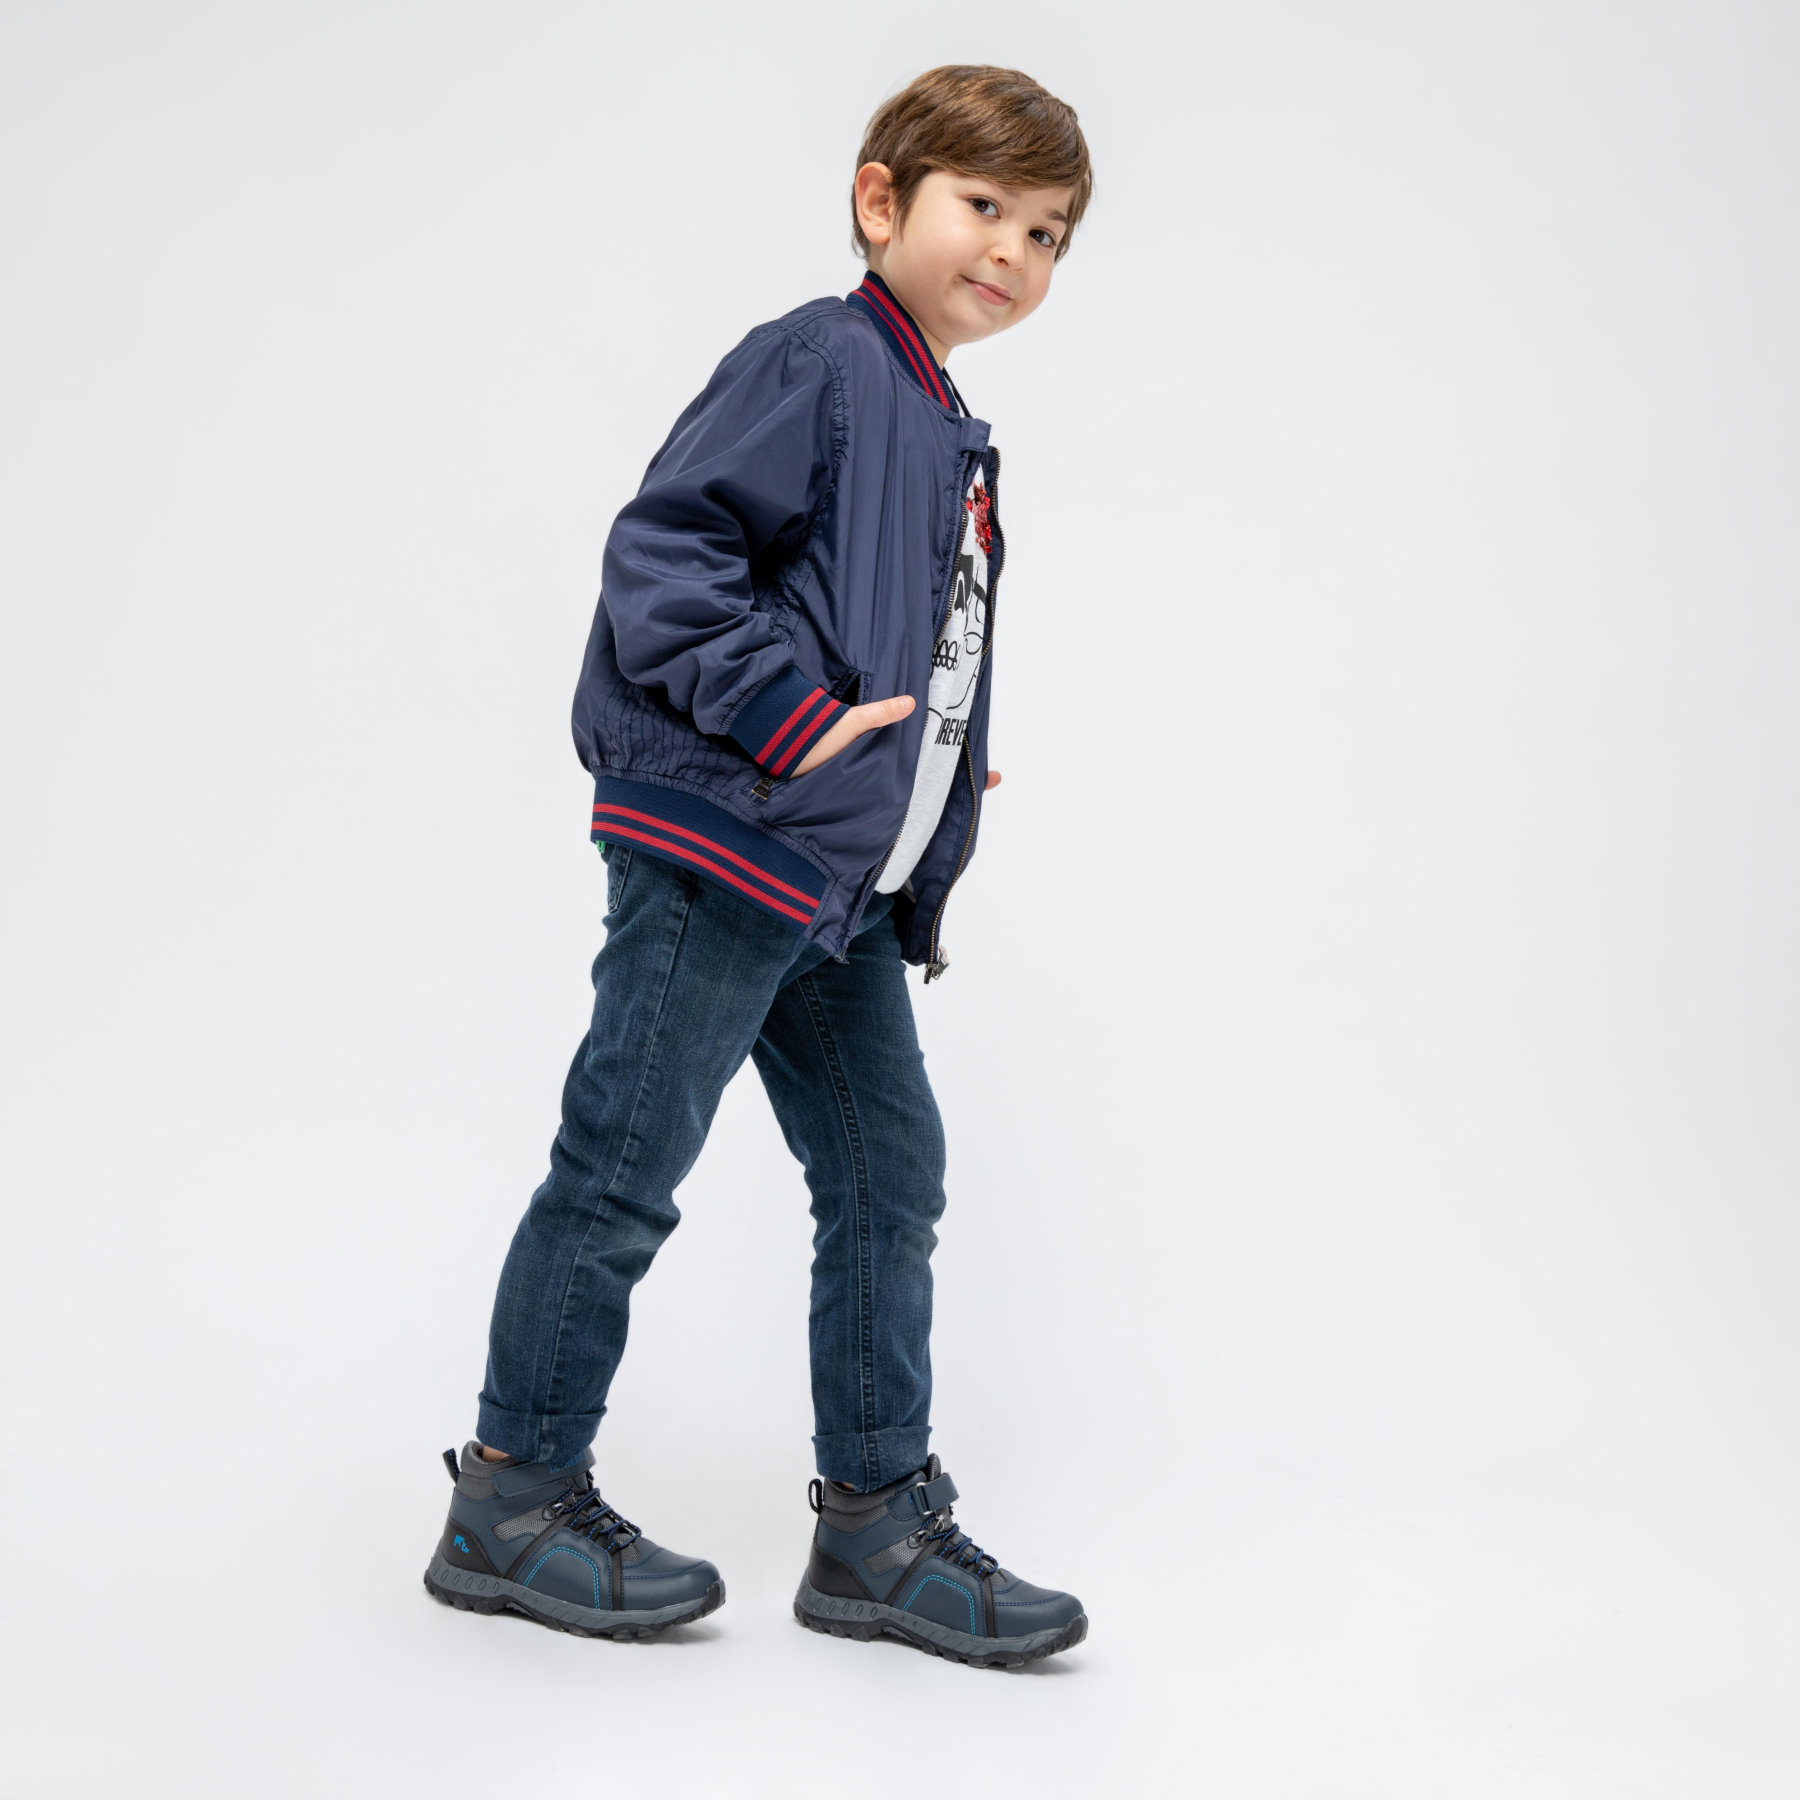 FLO MELKON 9PR Navy Blue Male Child Outdoor LUMBERJACK